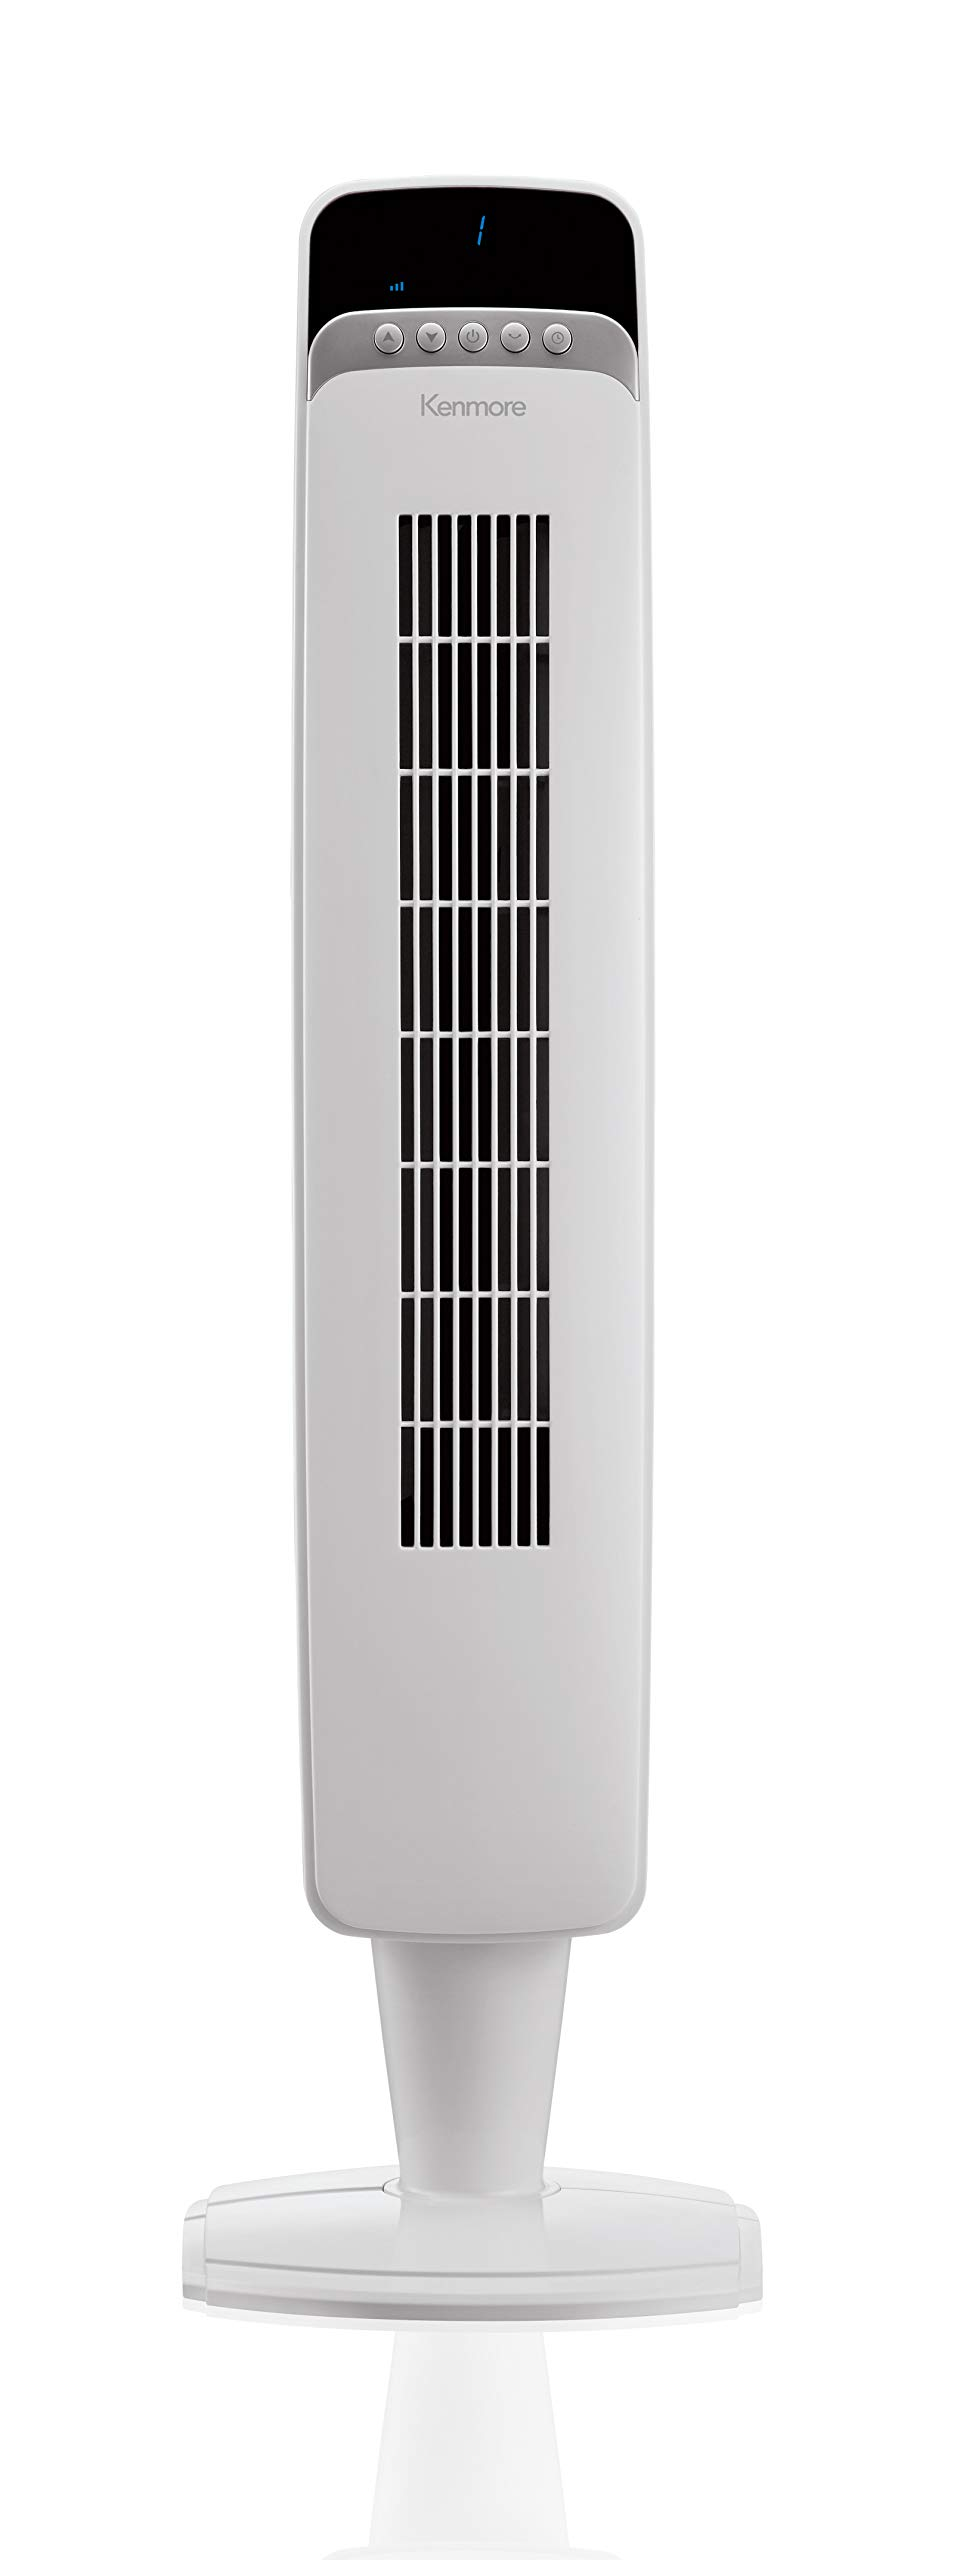 Kenmore 35040 40'' Oscillating Digital Tower Fan, White